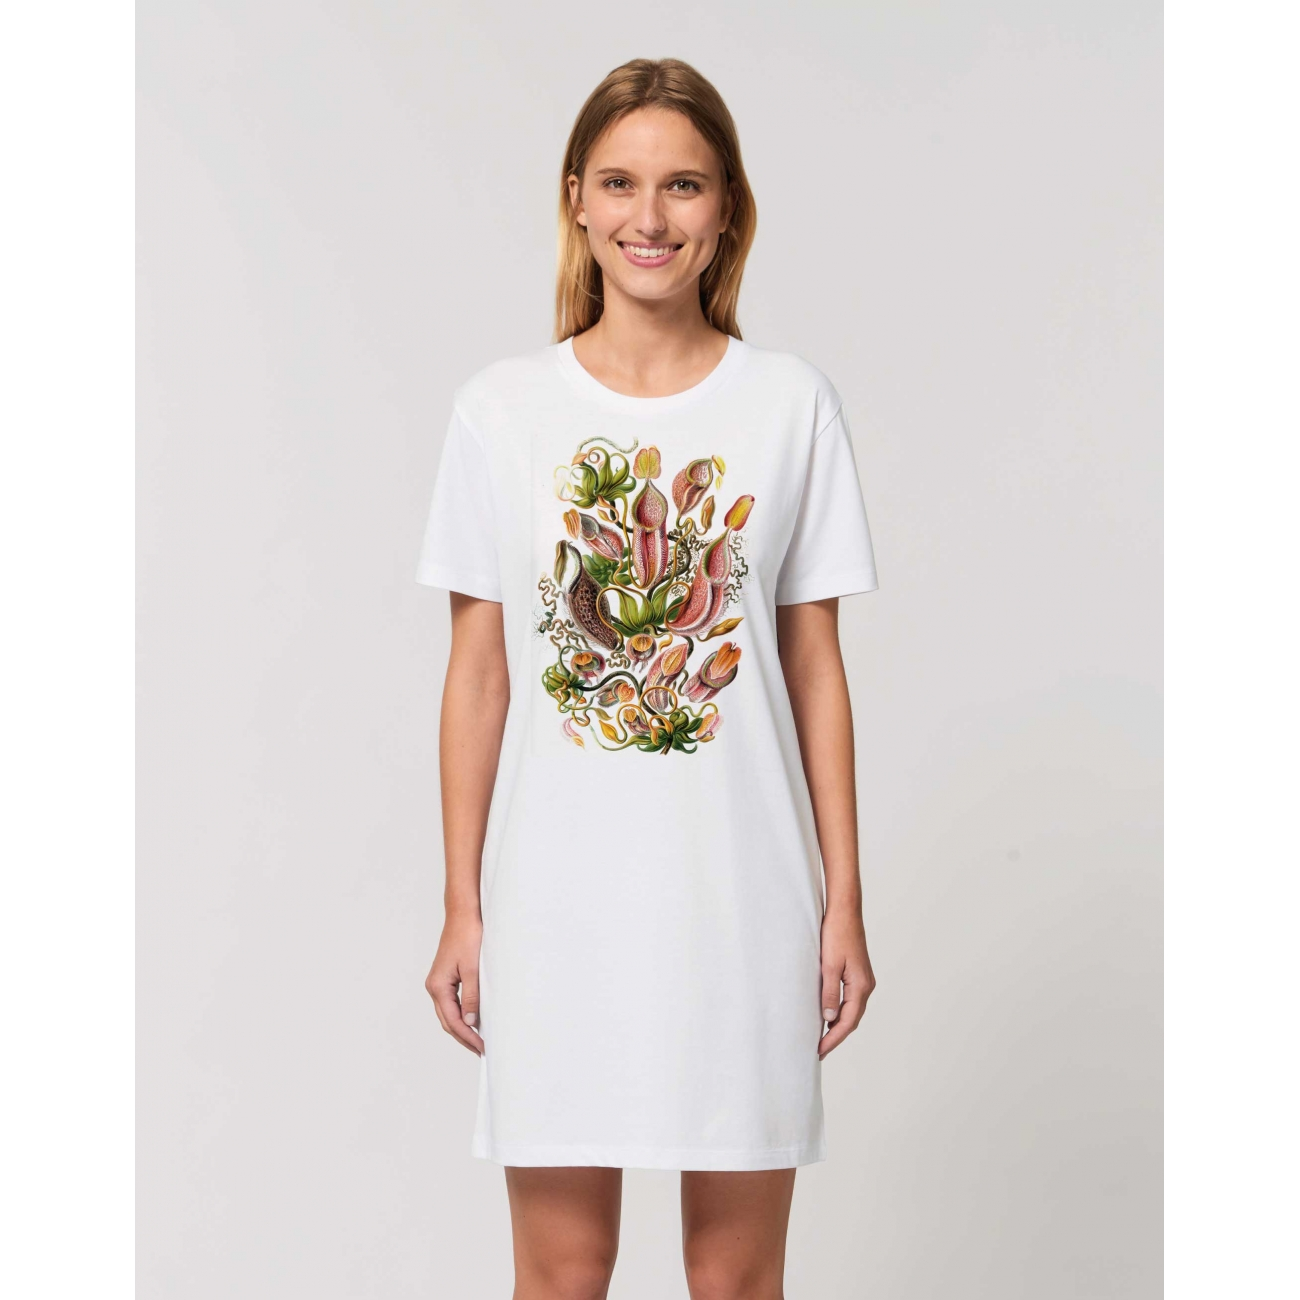 https://tee-shirt-bio.com/9527-thickbox_default/robe-tee-shirt-coton-bio-blanc-impression-fleur-nepenthes.jpg